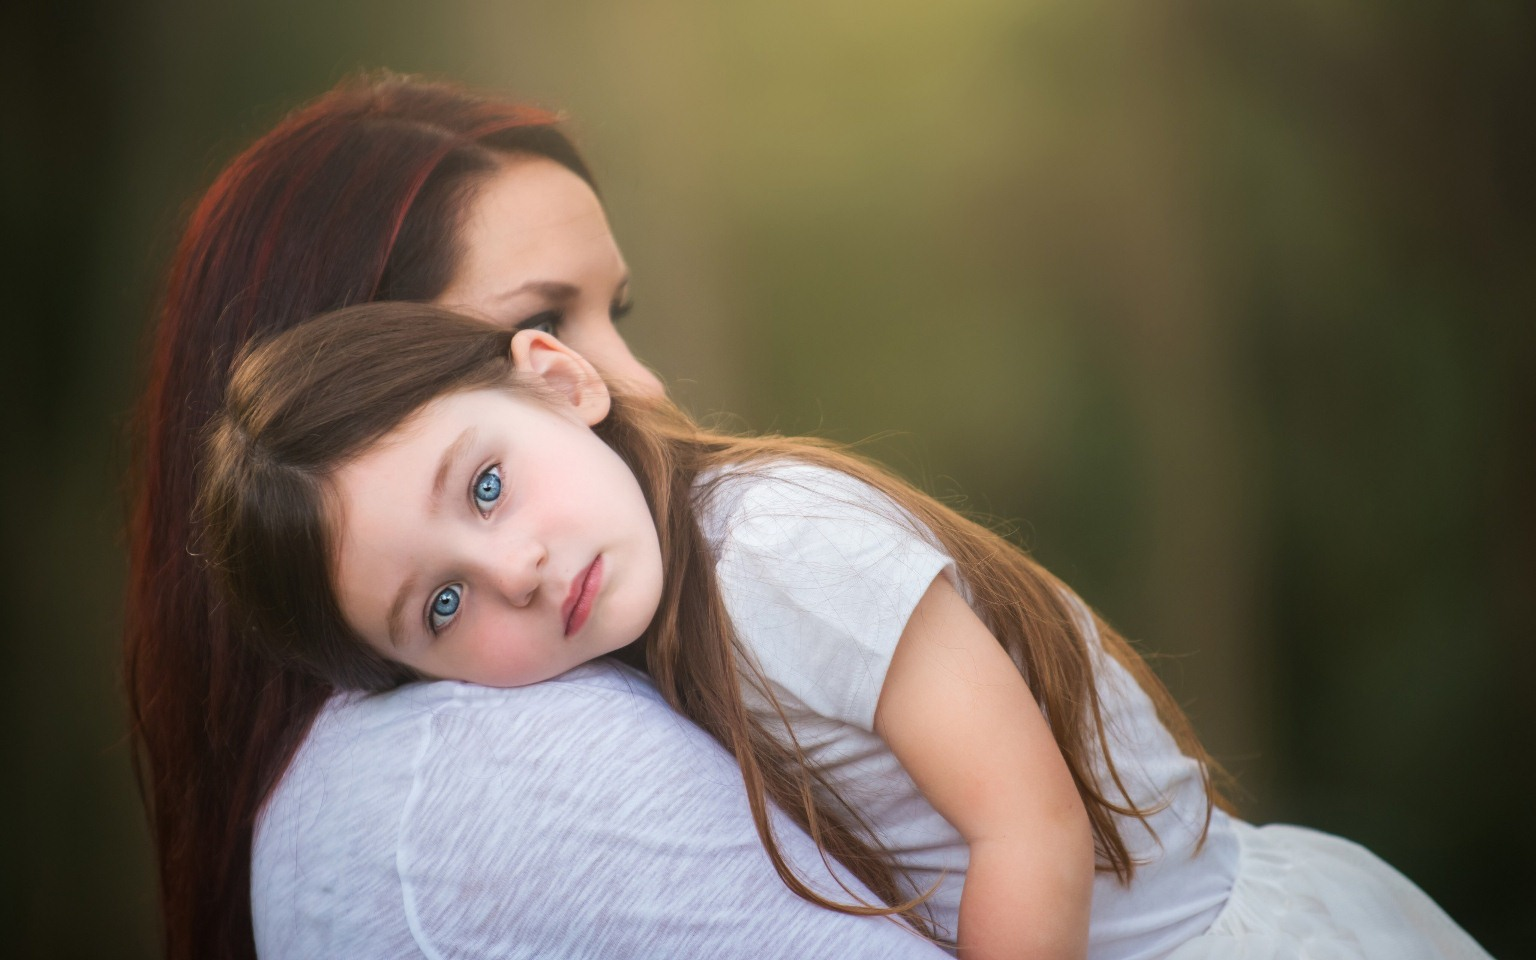 mother-and-child-mom-look-mood-happy-lovely-protection-photo-wallpaper